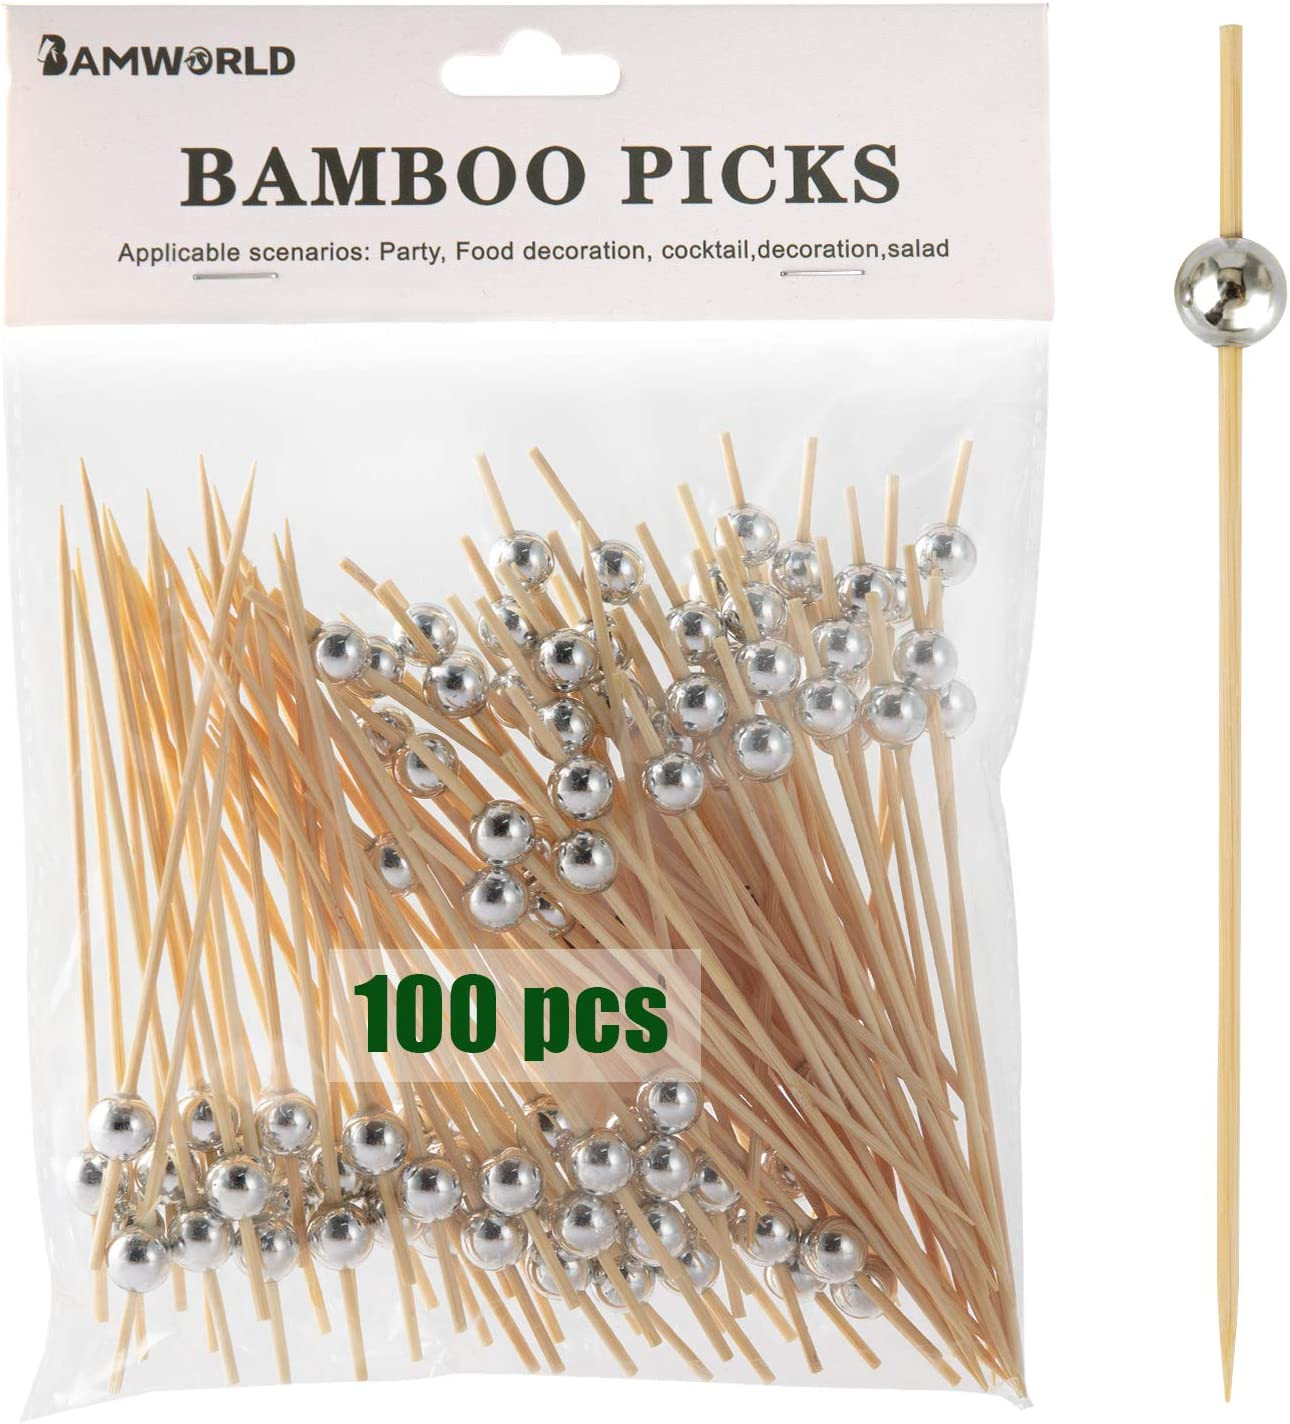 Bamboo Cocktail Picks Bamboo Skewers Appetizer Picks 4.7 Inch Food Picks with Handmade Design Skewers for Party Fruit and Food Snacks (Silver, 100)